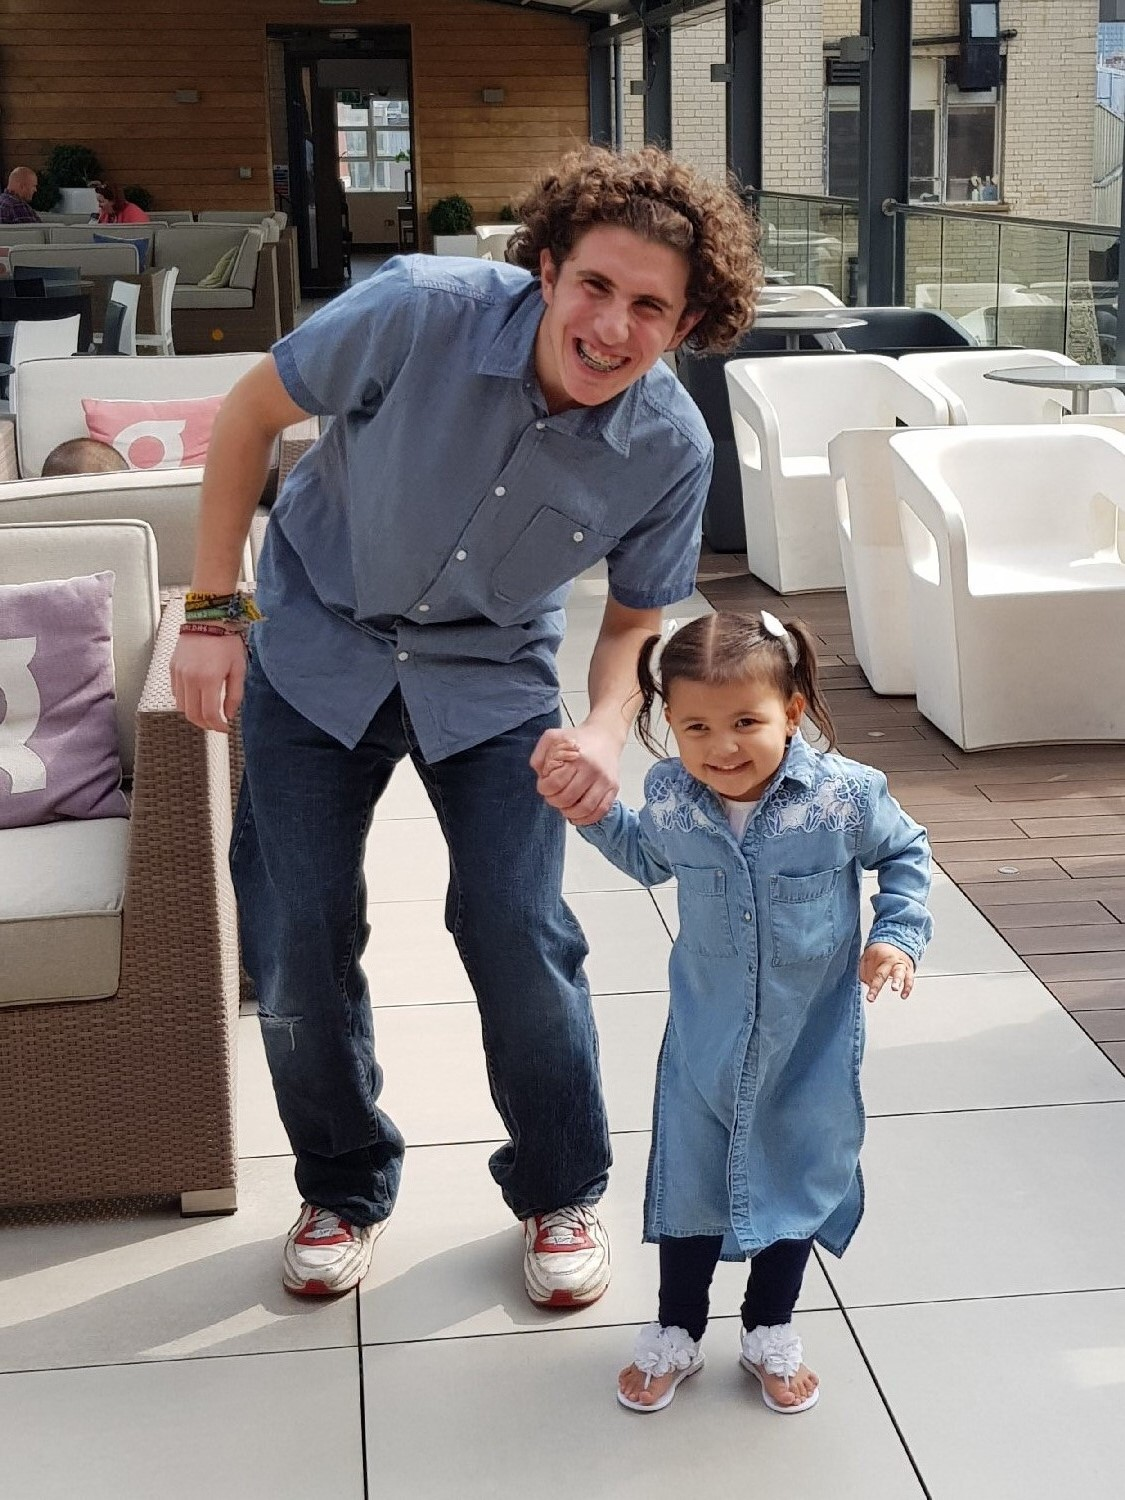 A toddler leads a teenager by the hand at a CHECT event. The teen is wearing jeans and a blue shirt. The toddler is wearing a blue denim dress. They both have wide smiles.